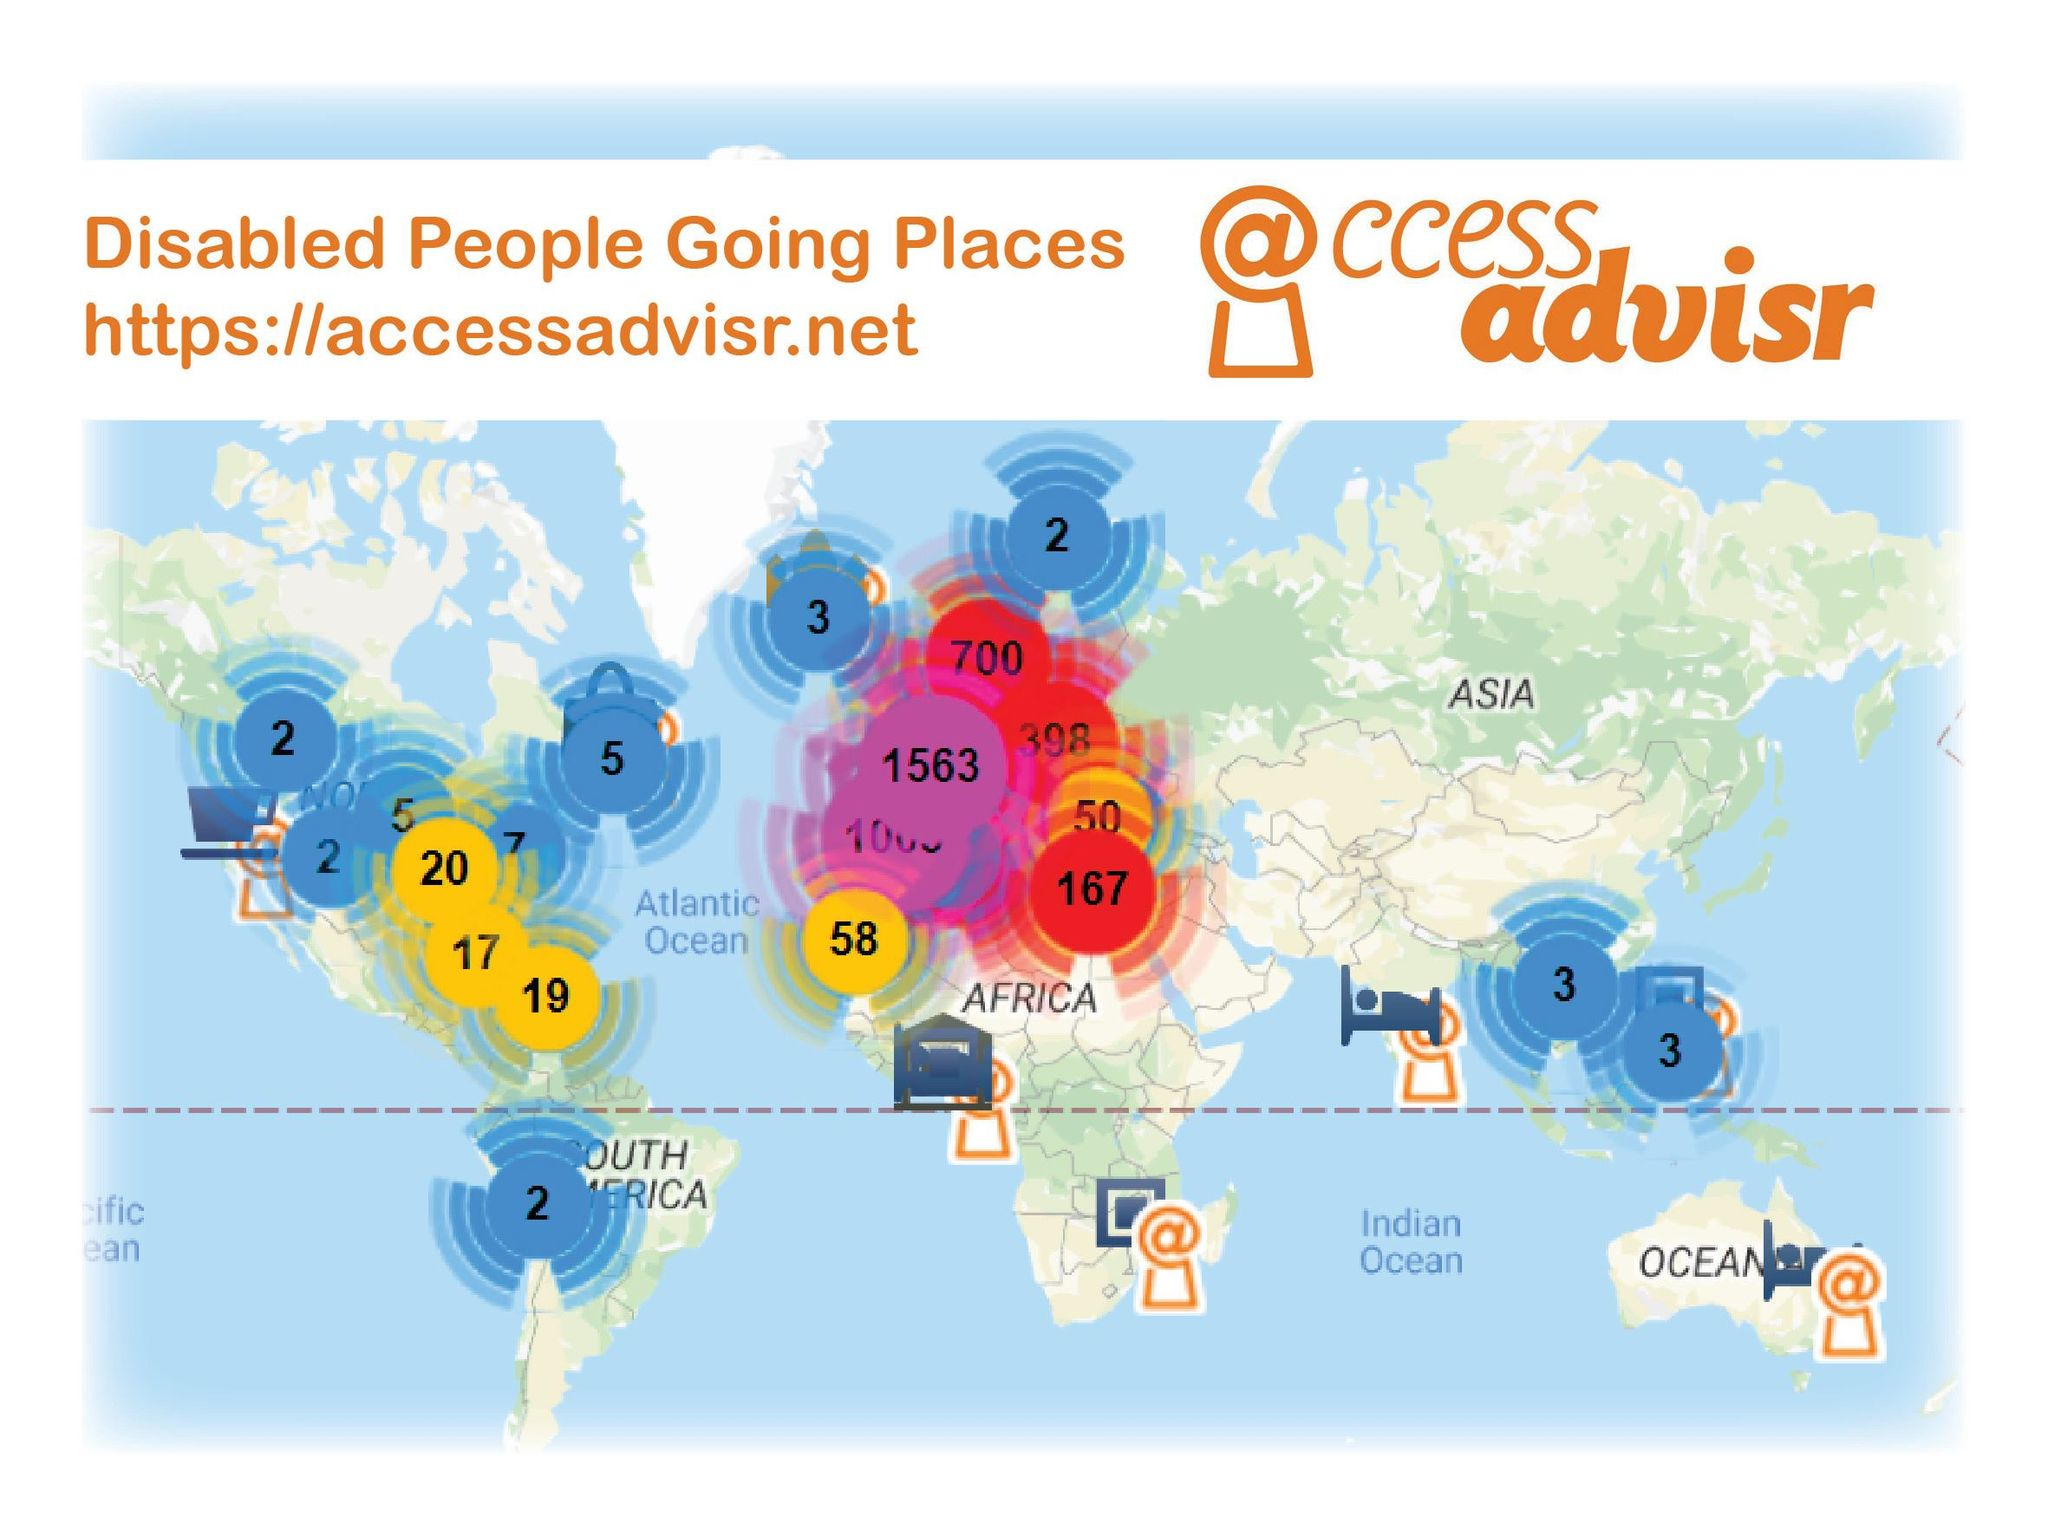 A map of the rate of disabled people and places they go around the world